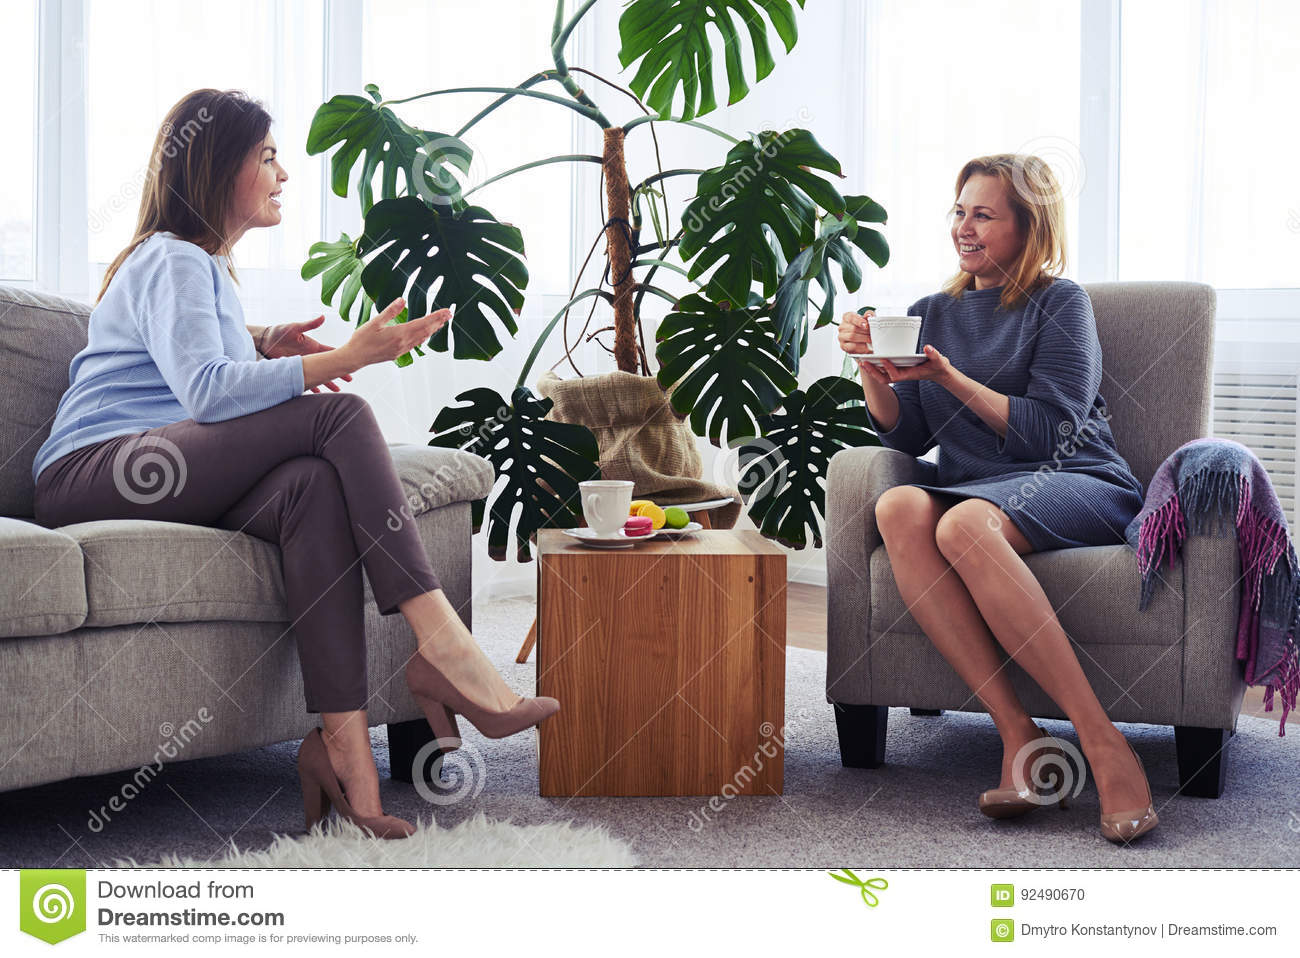 Two women communicating while drinking coffee in living room